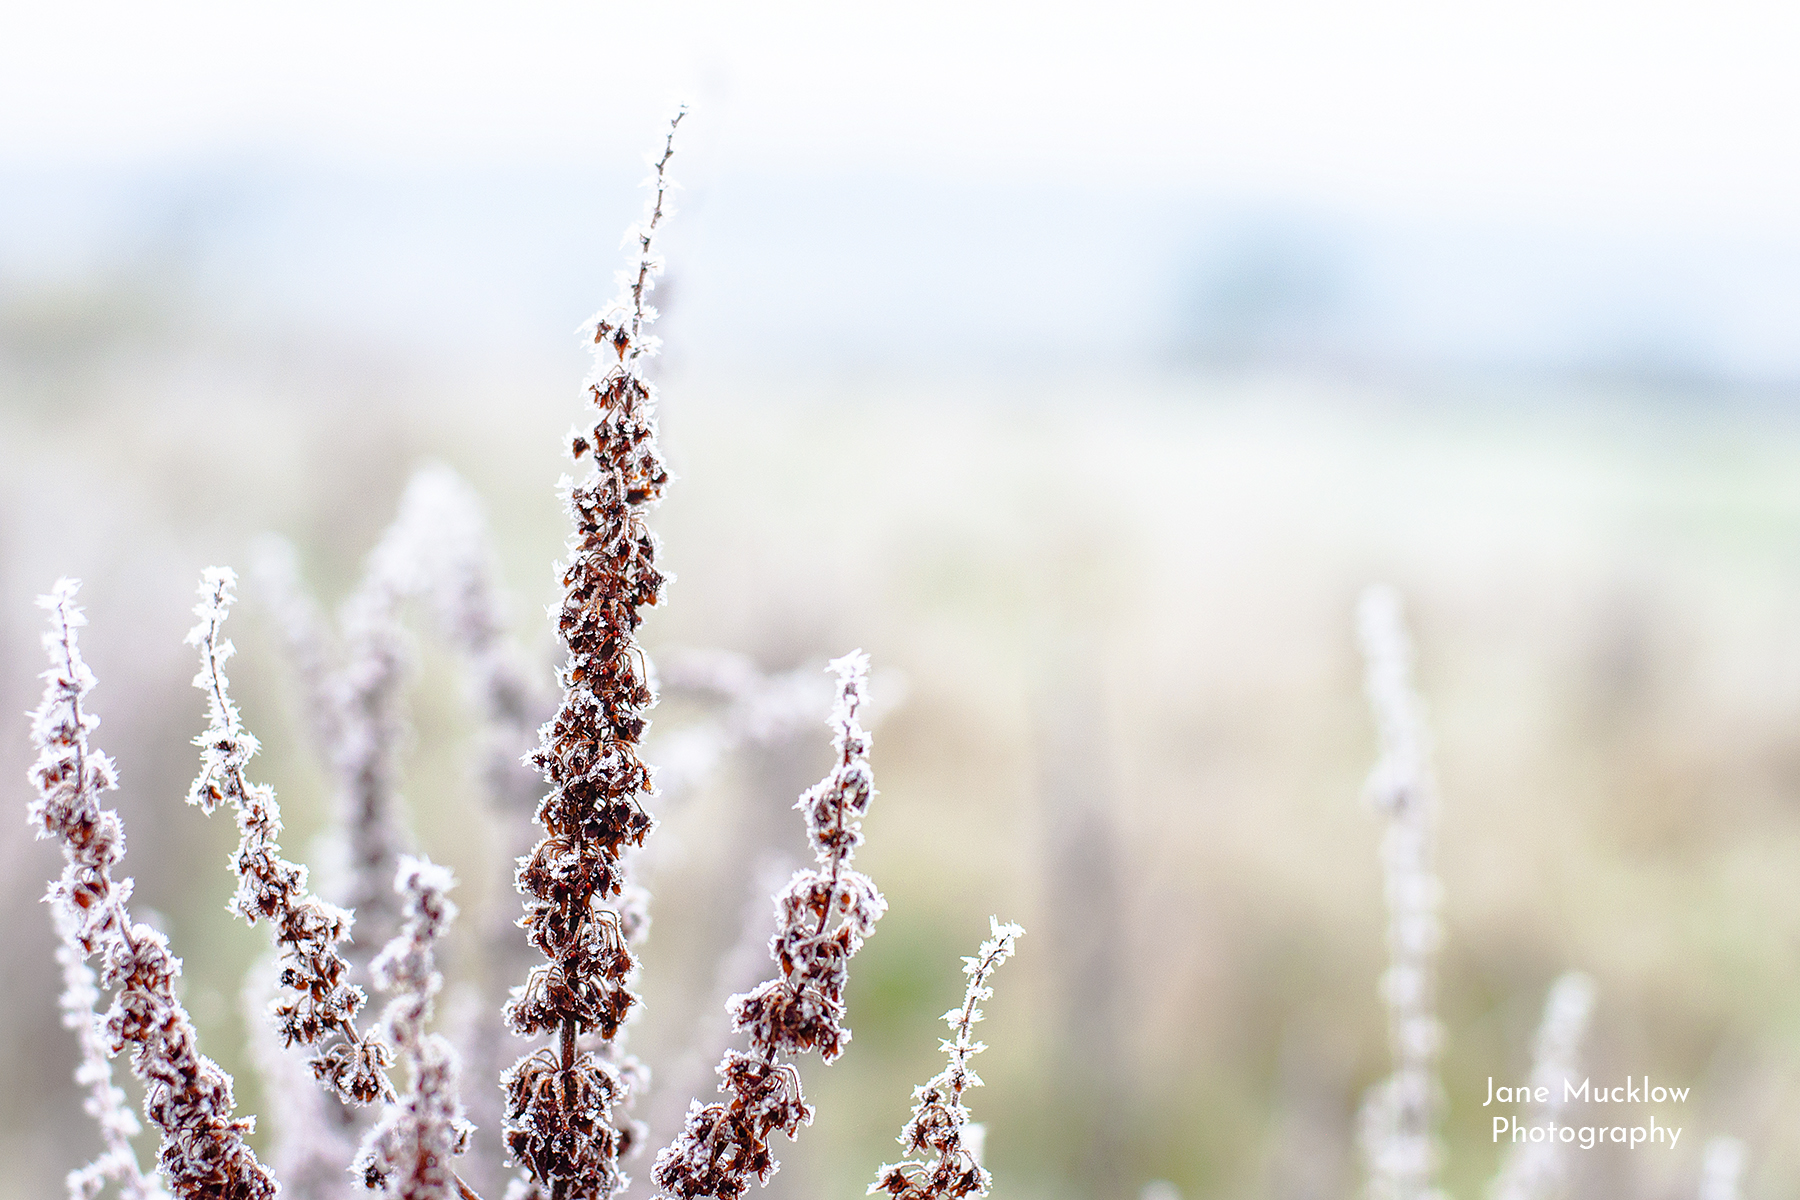 Photo of wild grass flowers, in heavy frost, by Jane Mucklow